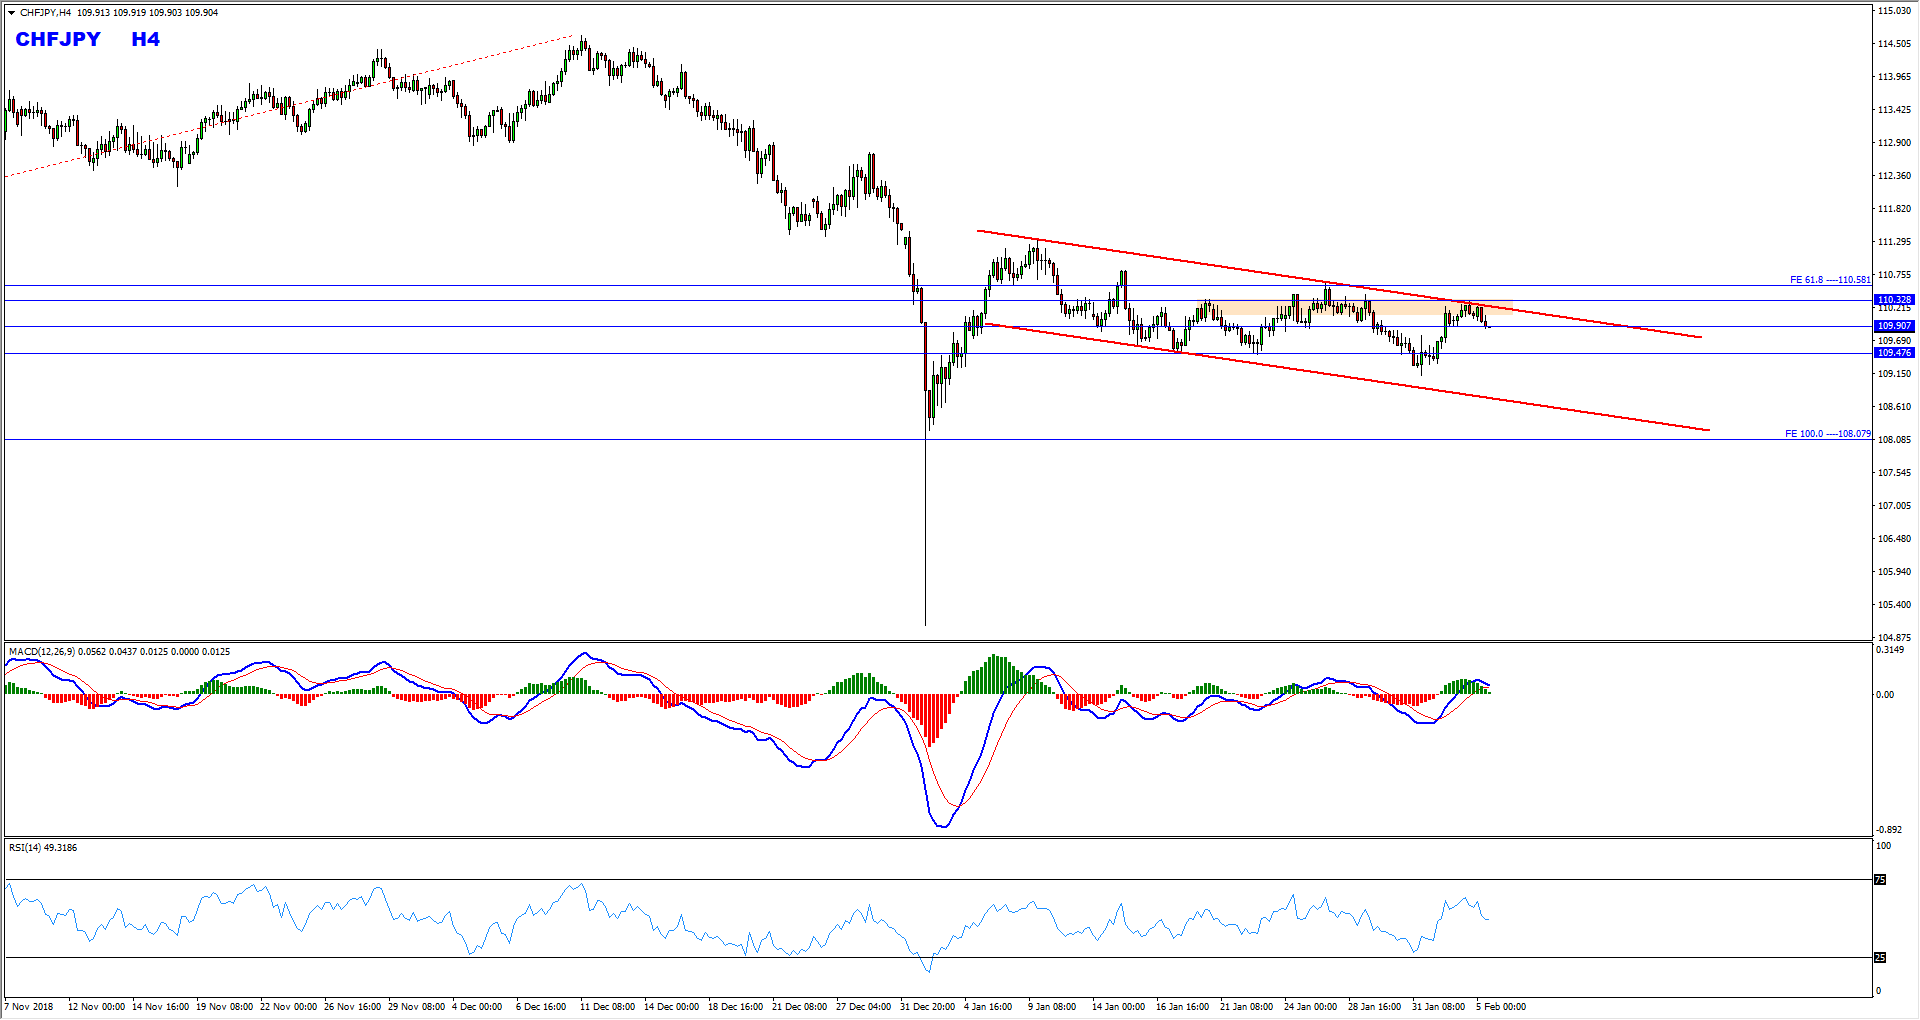 CHFJPY Bearish Opportunity Forming At The Moment